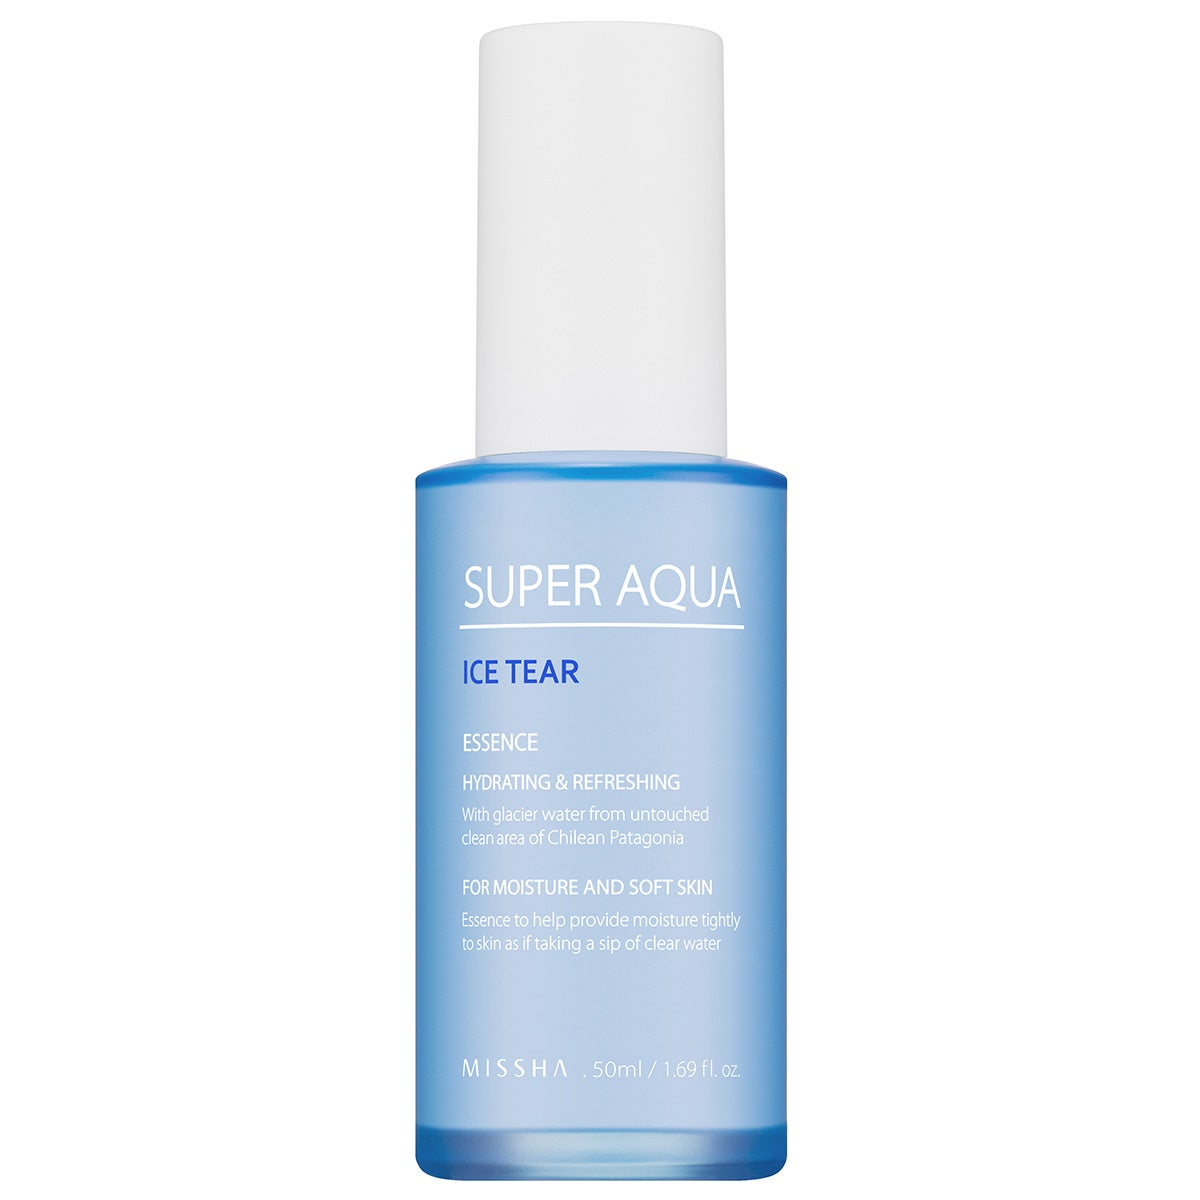 MISSHA Super Aqua Ice Tear Essence